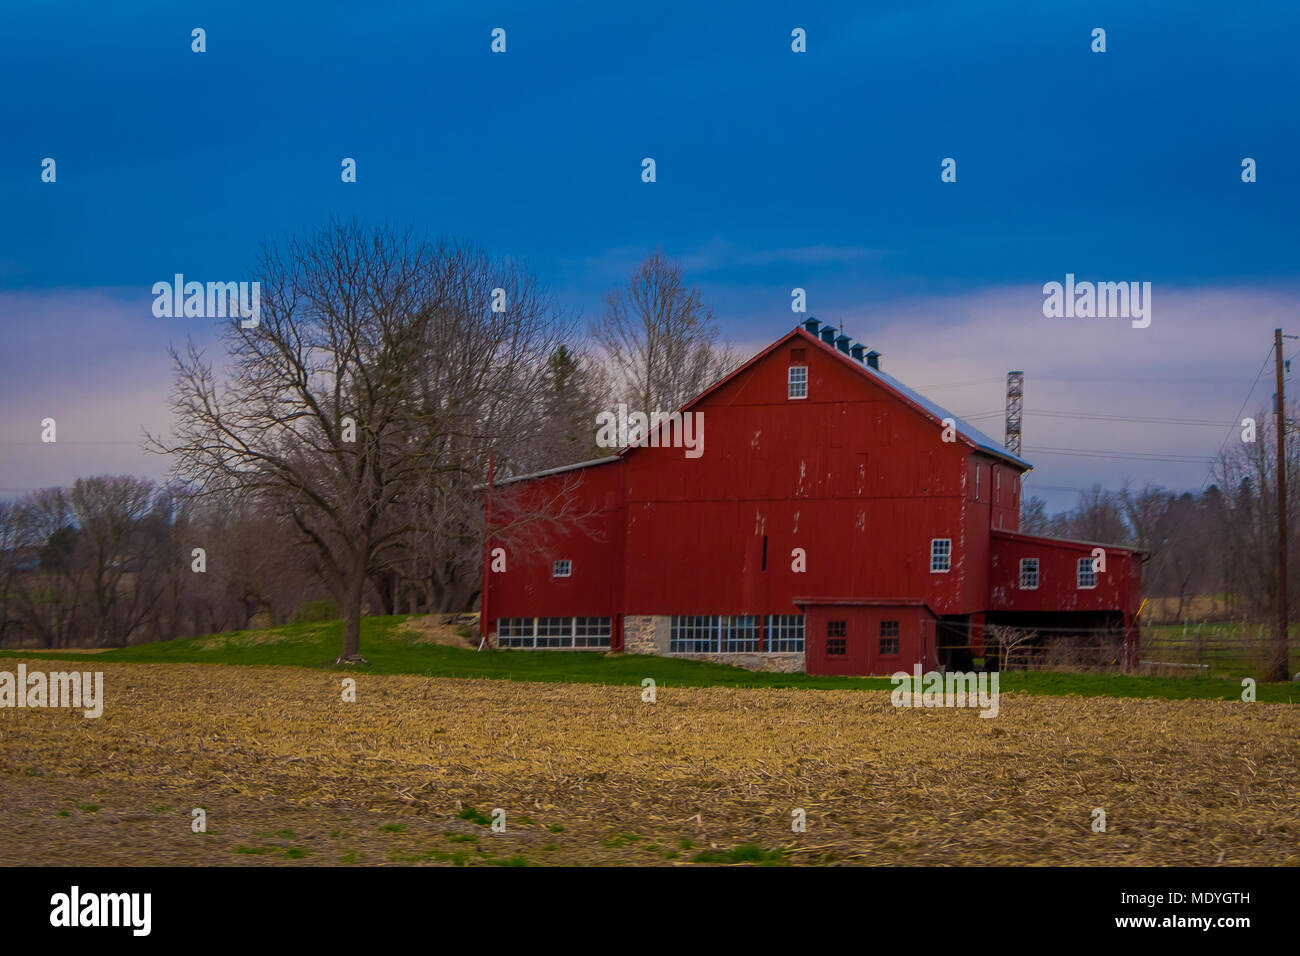 outdoor view of wooden red house building located in amish country